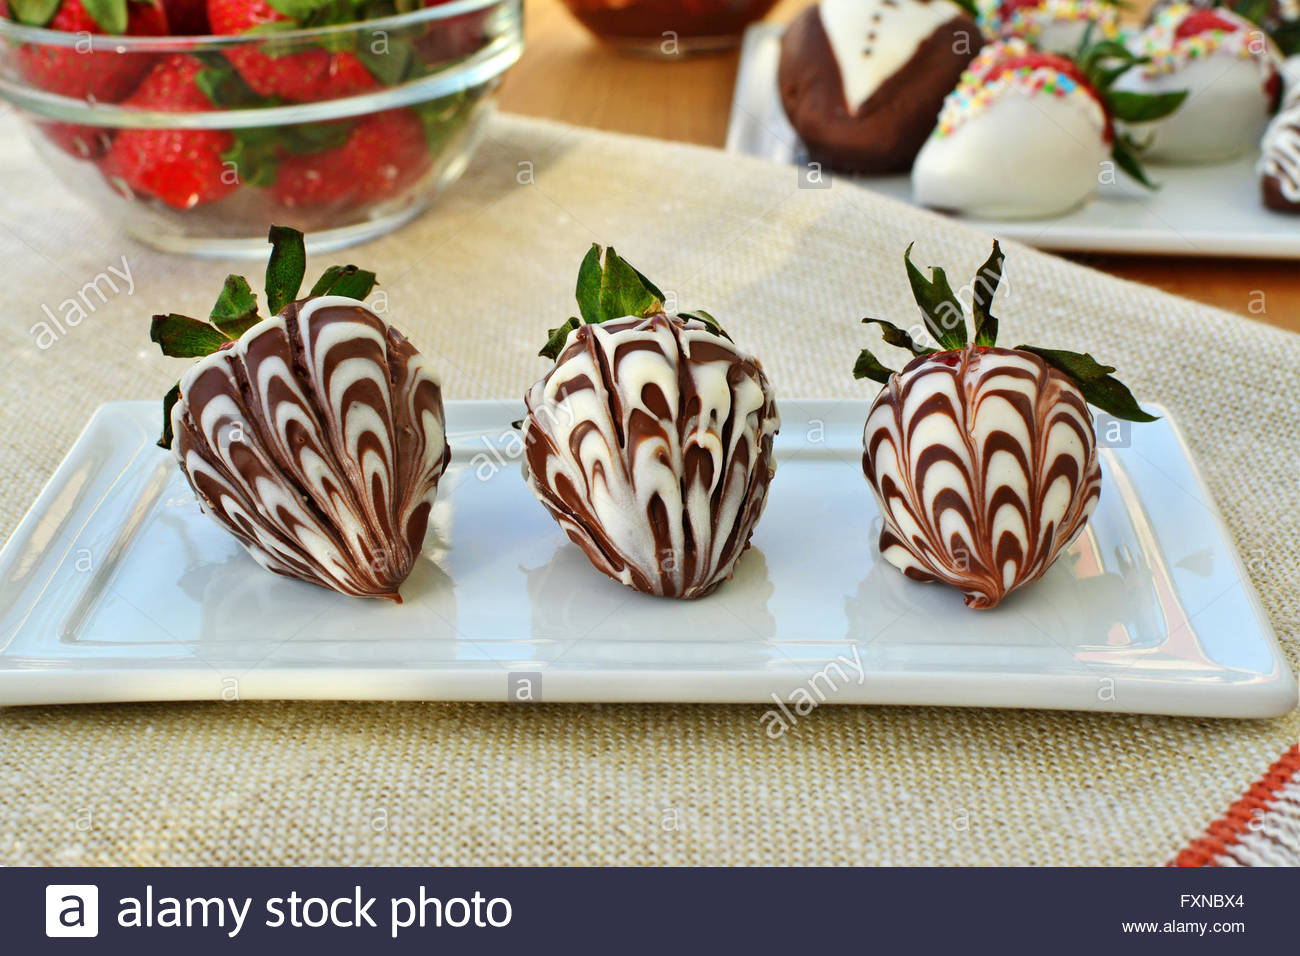 Chocolate Covered Strawberries Stock Photos & Chocolate Covered ...